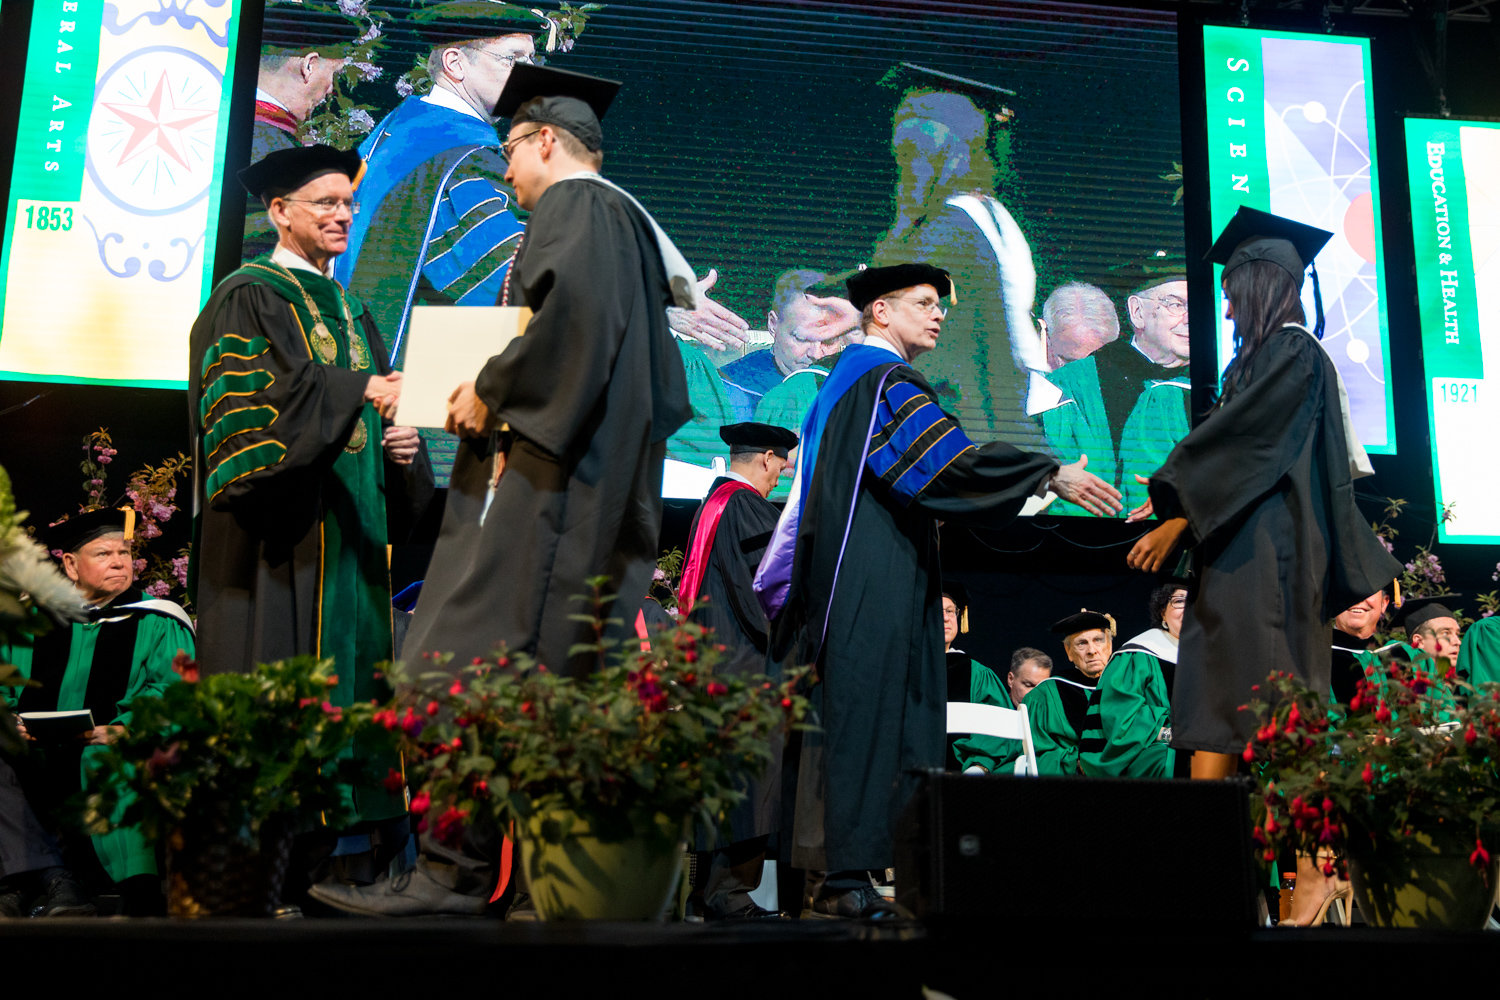 Graduating seniors in Manhattan College's Class of 2019 walk on stage to receive their degrees after hearing a stirring speech from commencement speaker U.S. Supreme Court Justice Sonia Sotomayor. The school has not yet confirmed a commencement speaker for the Class of 2020, and time is running out.